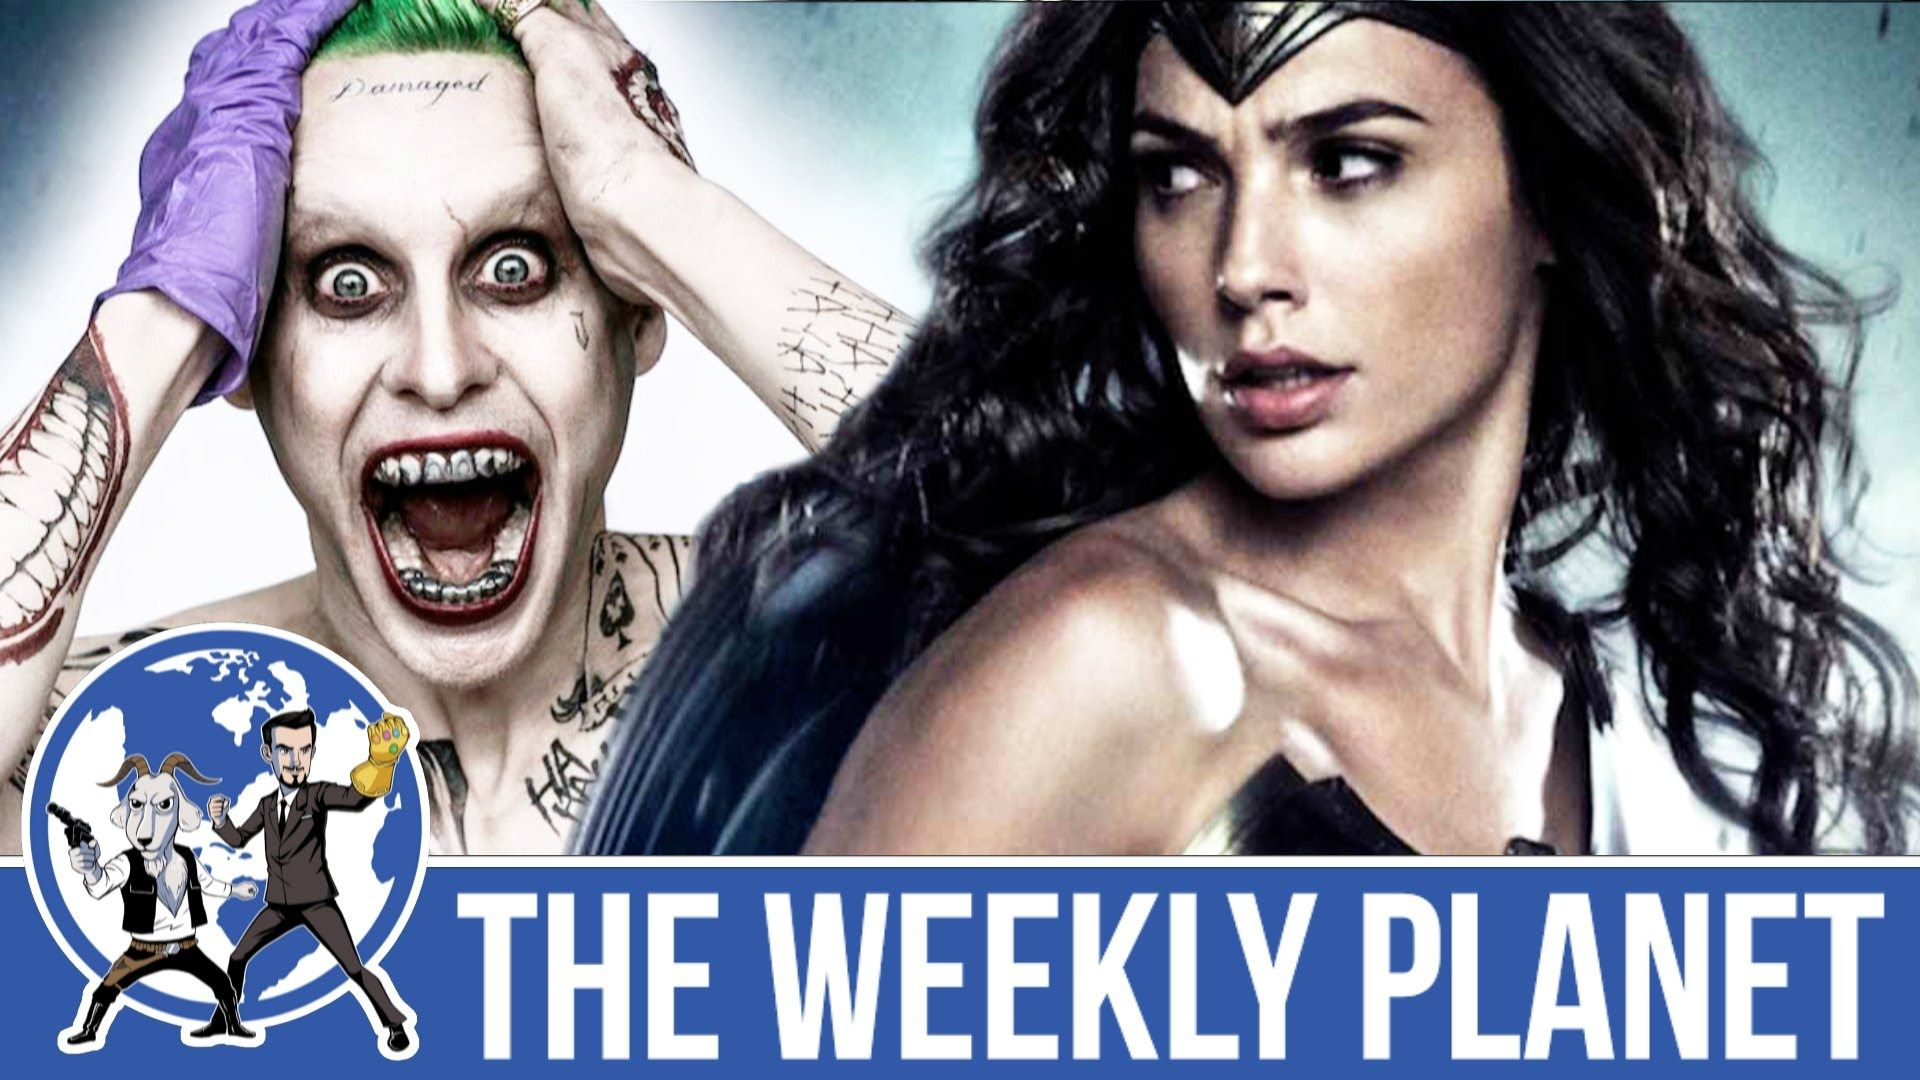 DC's Massive Line Up! (Suicide Squad, Wonder Woman, Justice League) - The Weekly Planet Podcast - Don't Miss Out --> http://www.comics2film.com/dc/dcs-massive-line-up-suicide-squad-wonder-woman-justice-league-the-weekly-planet-podcast/  #DC